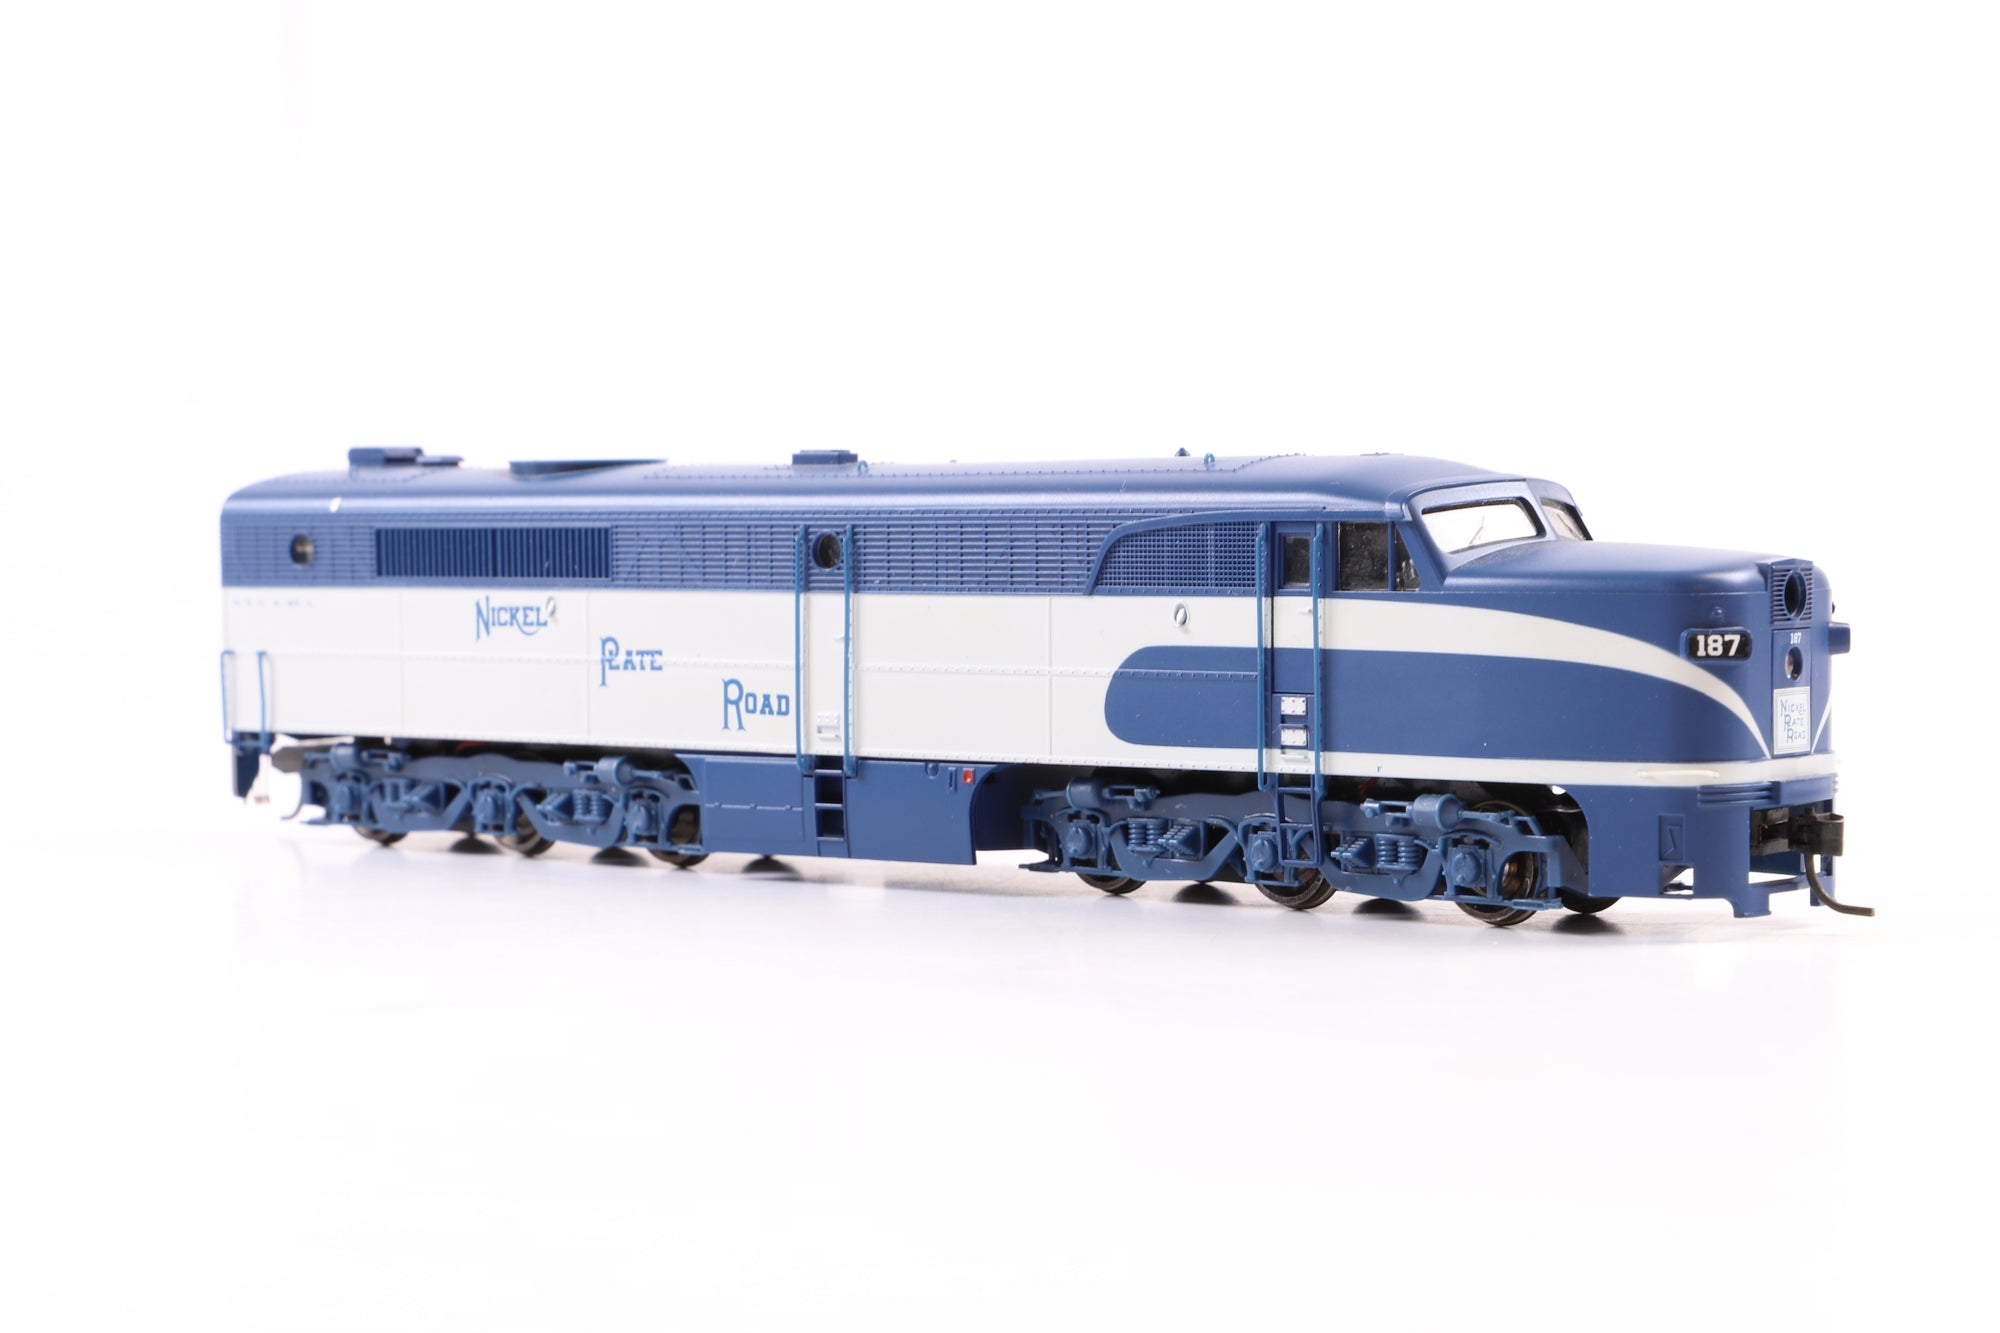 Proto 2000 Series HO 21664 Nickel Plate Road #187 w/Mars Light DCC Fitted